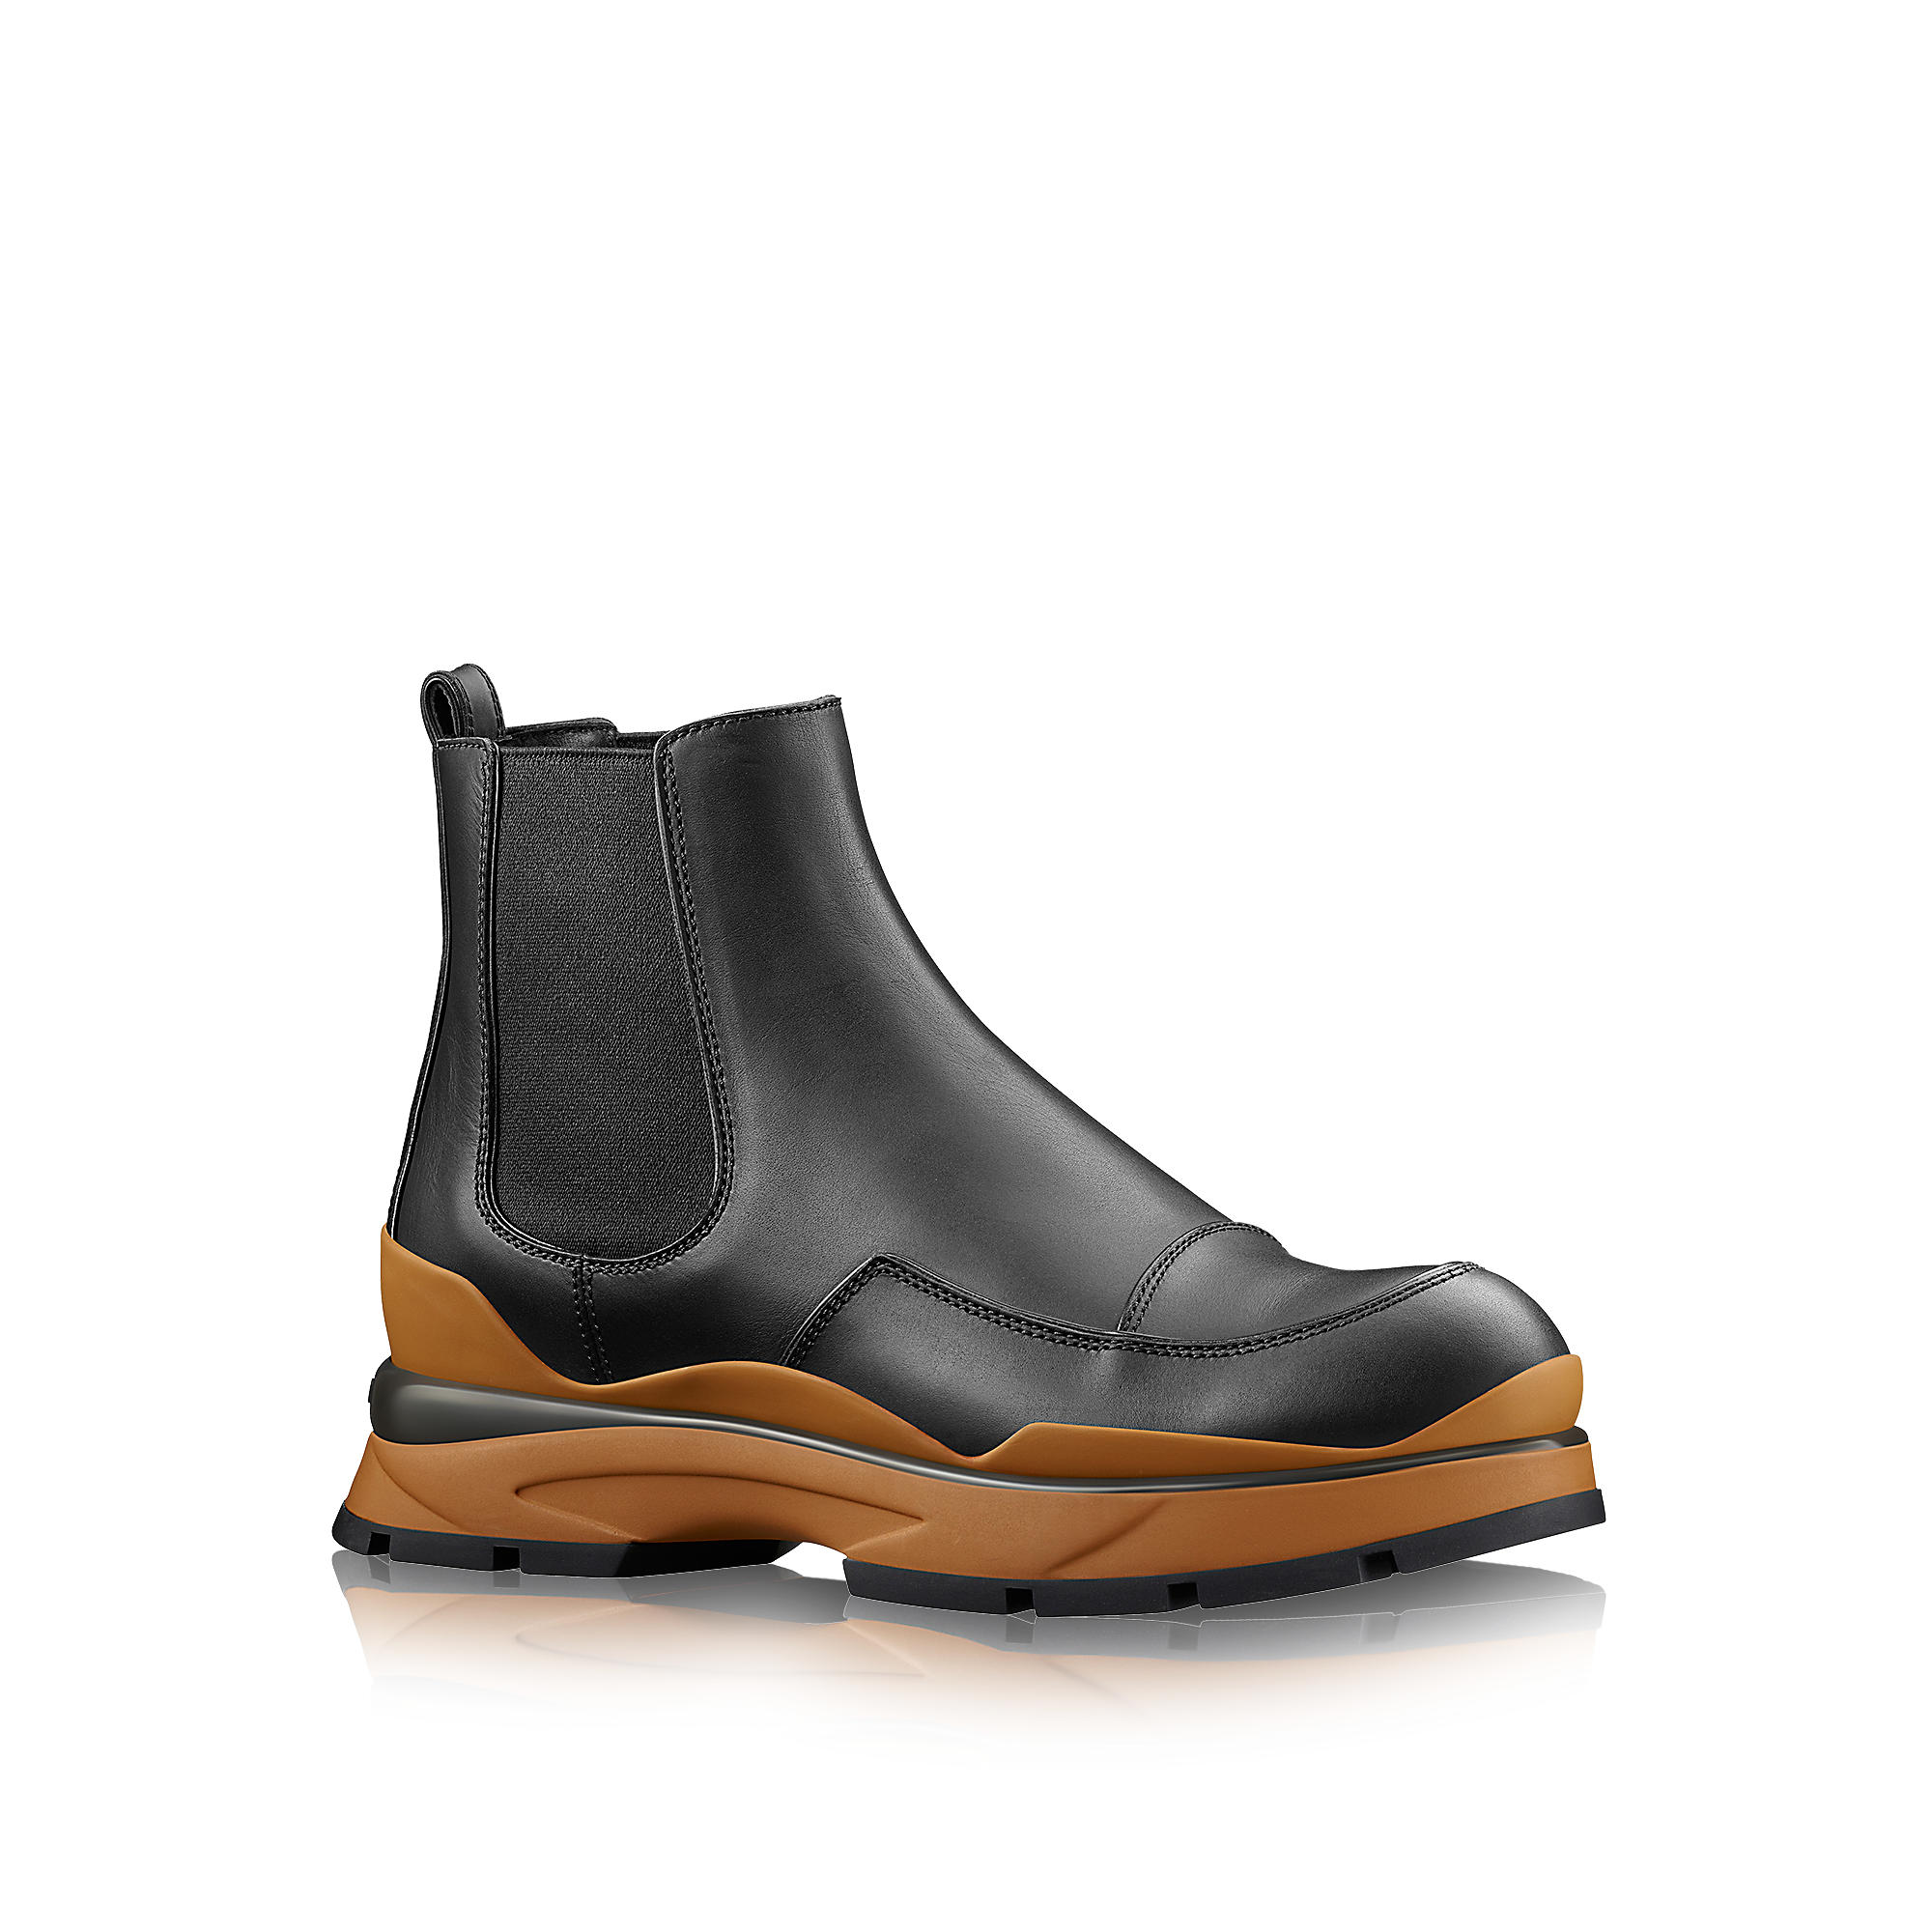 Louis Vuitton 485115 In Motion Chelsea Boot